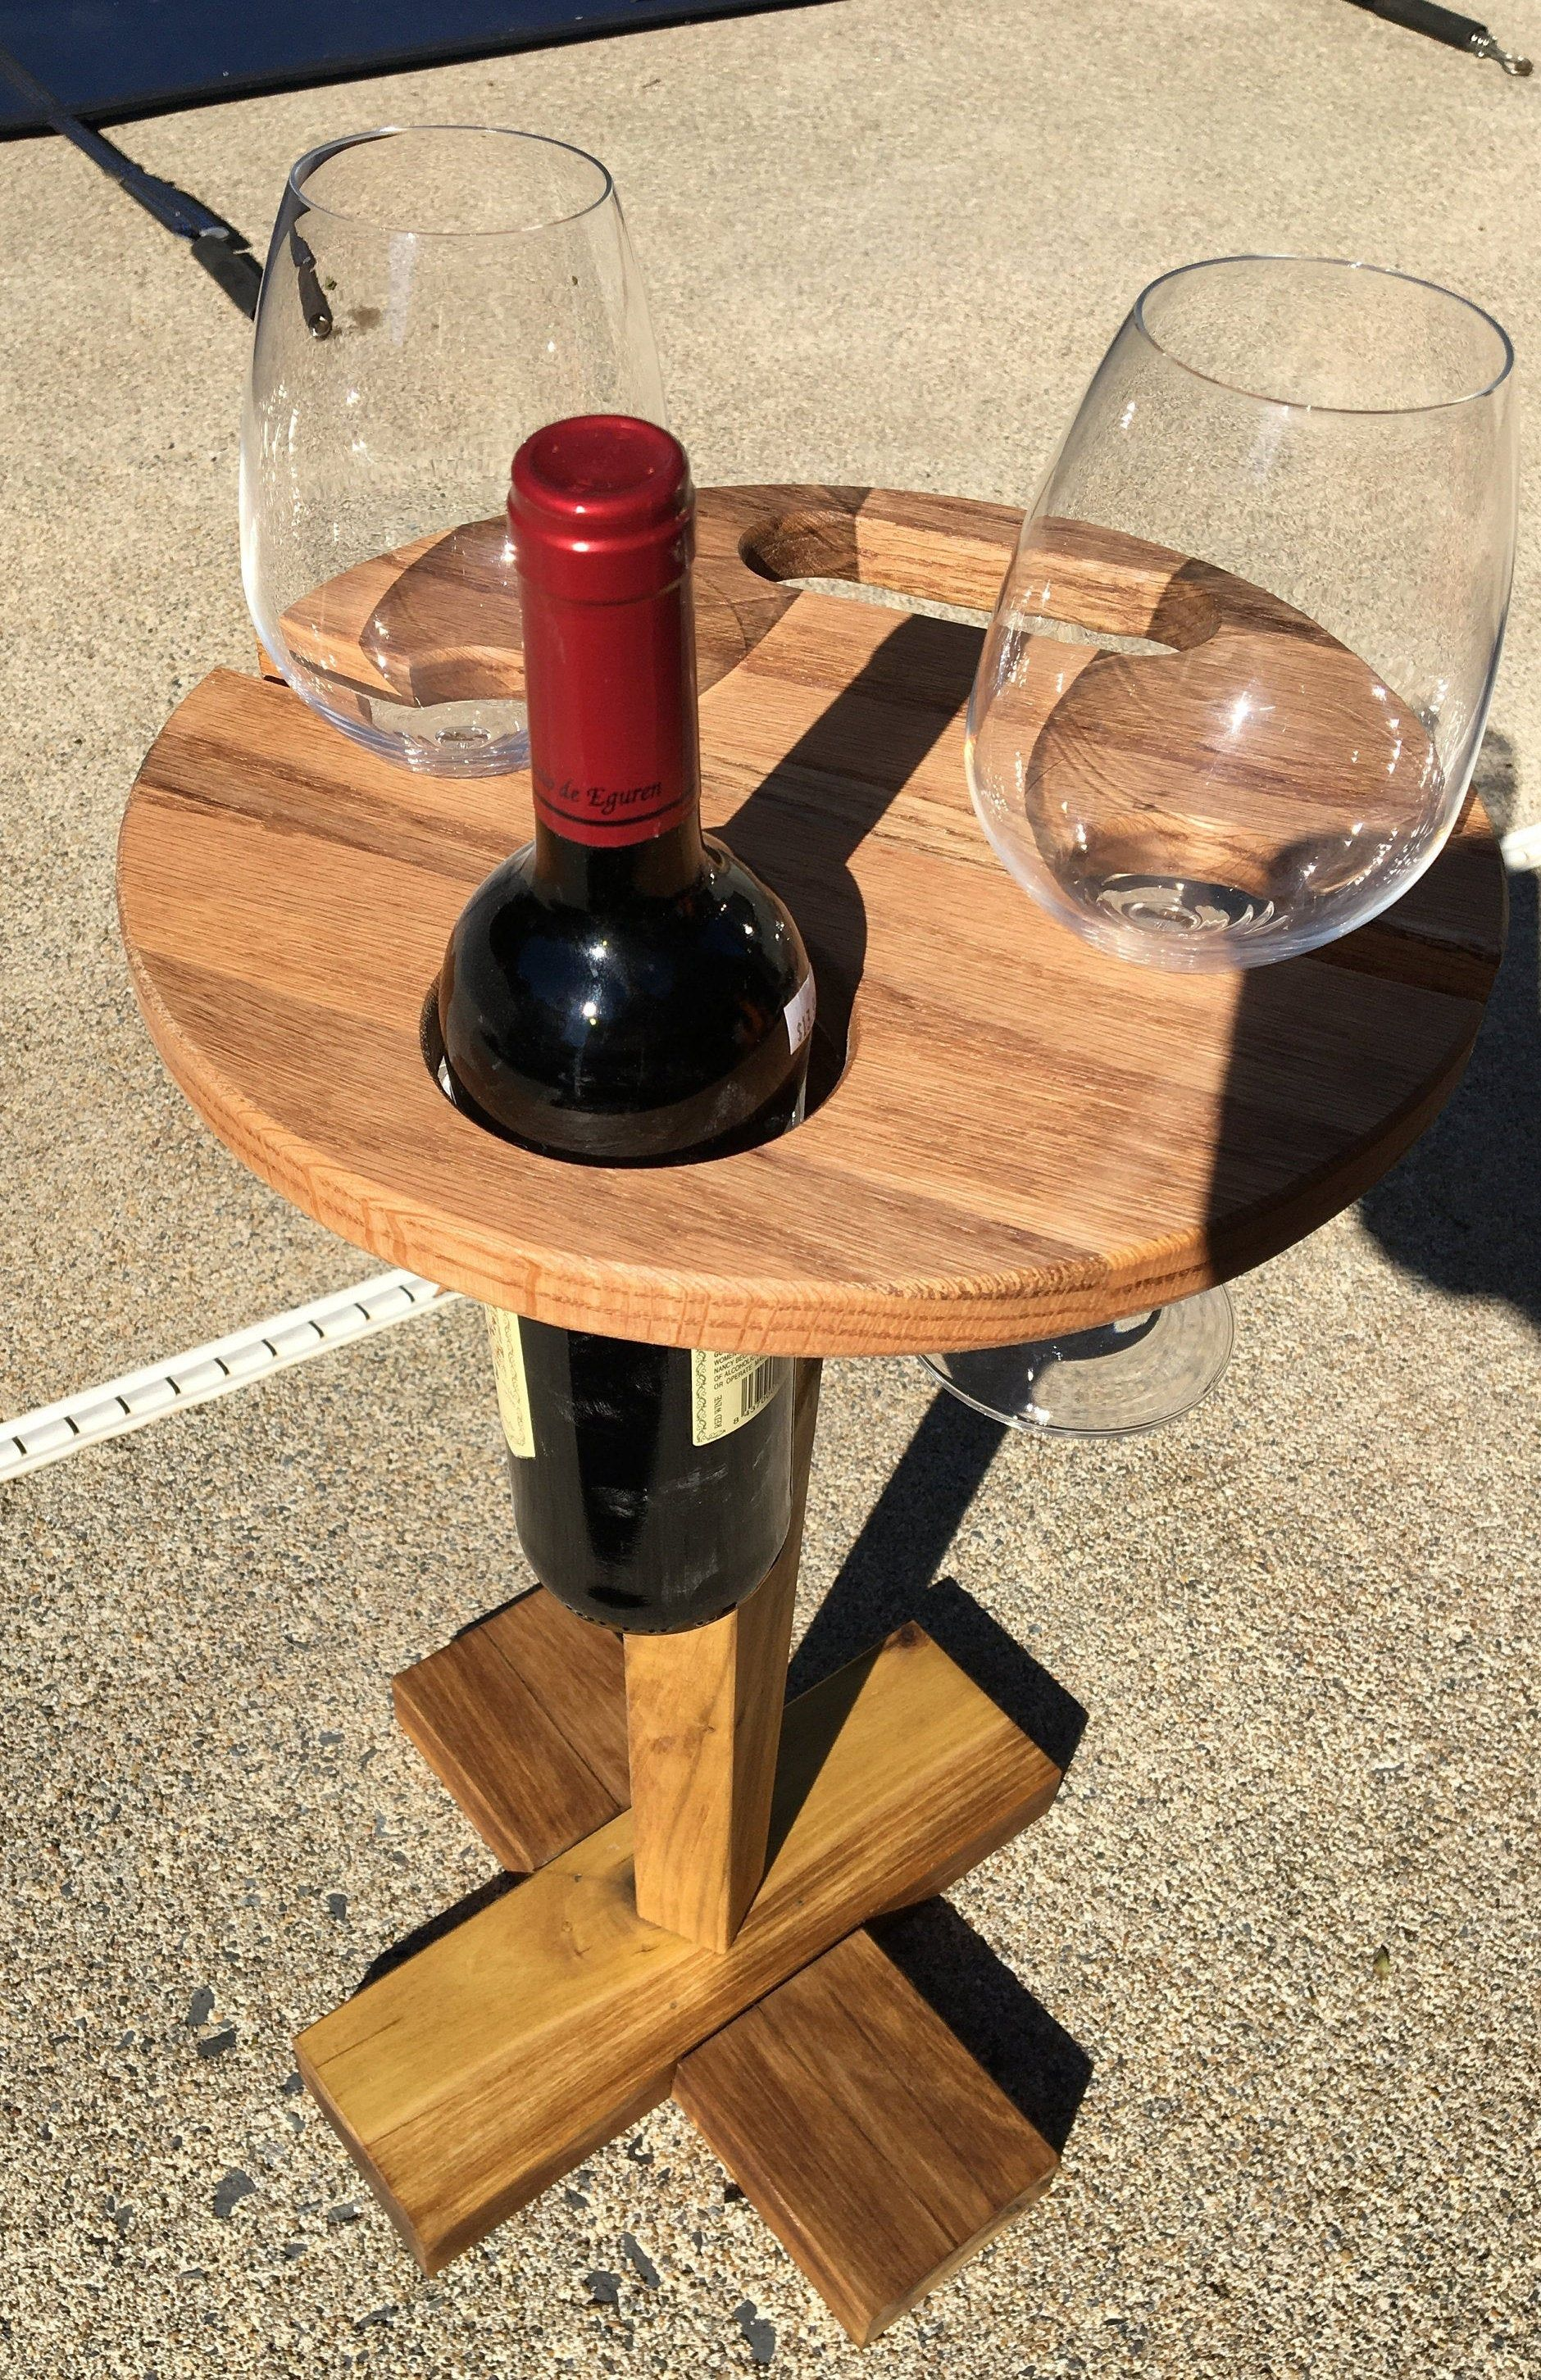 Convertible Portable Wine Bottle Stand Patio Picnic Beach